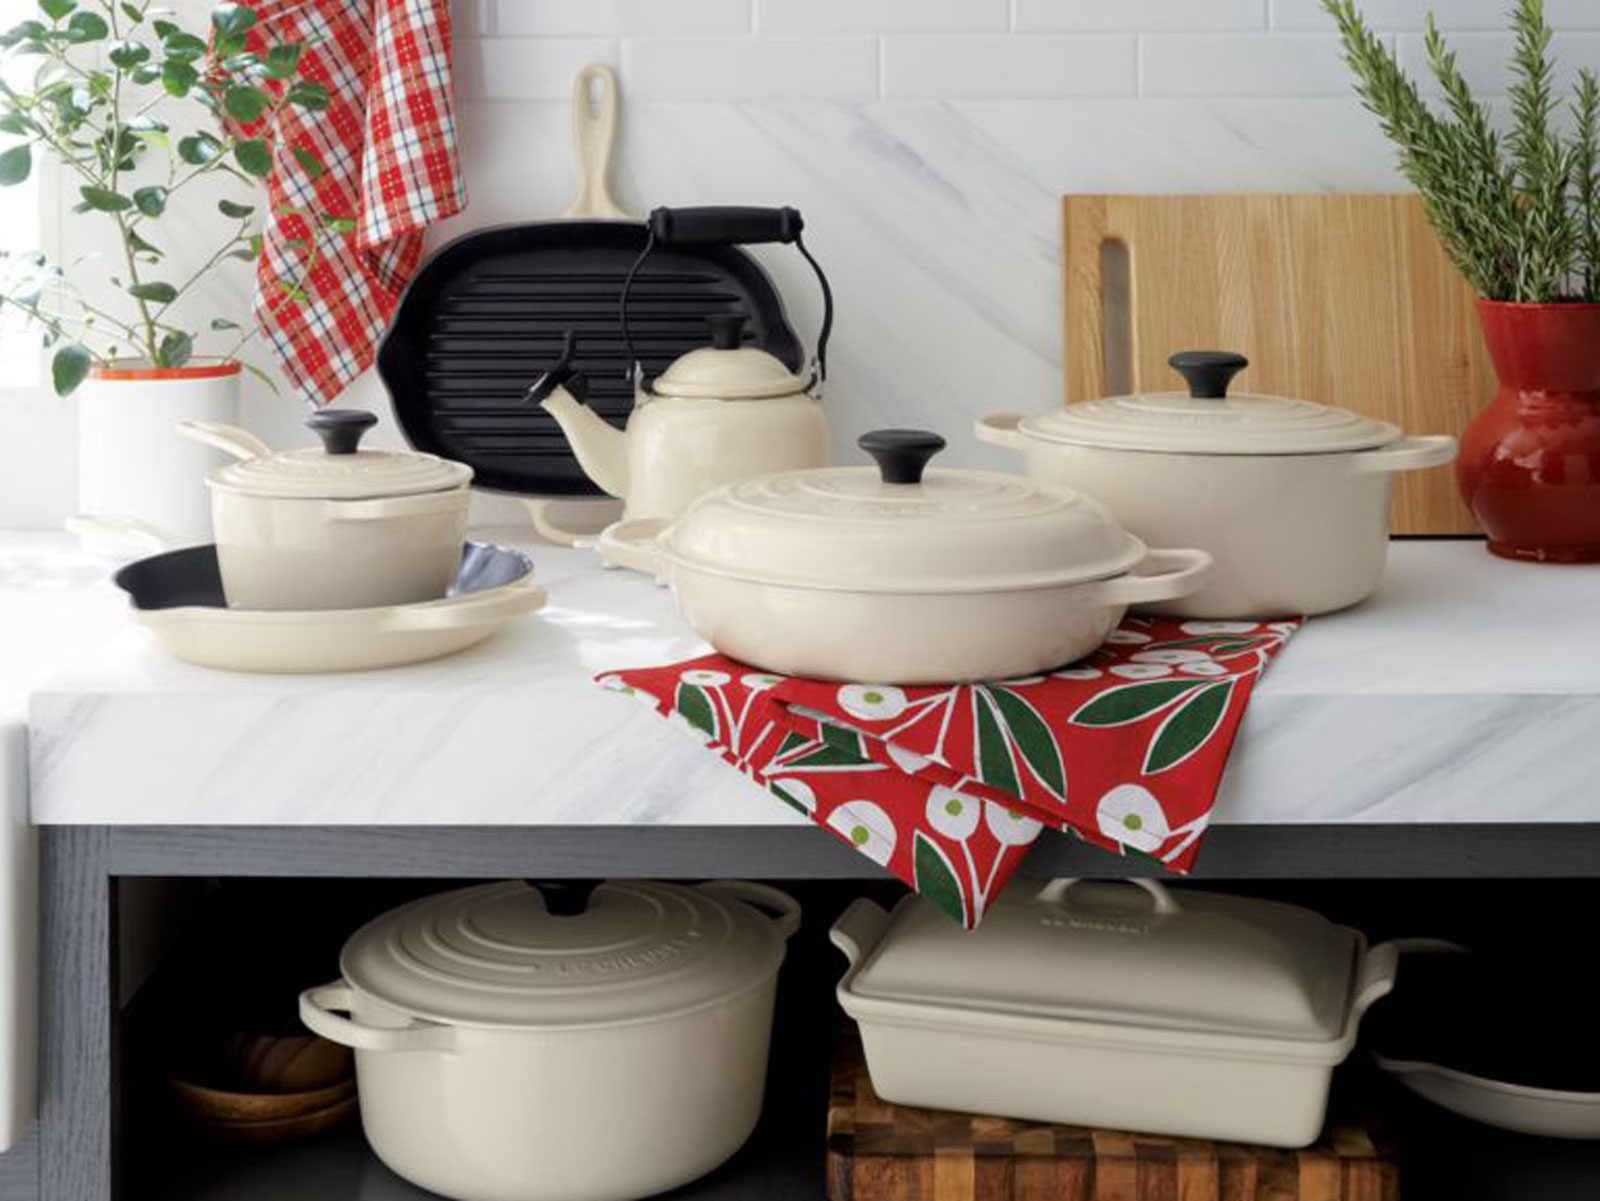 Le Creuset set of cookware in cream